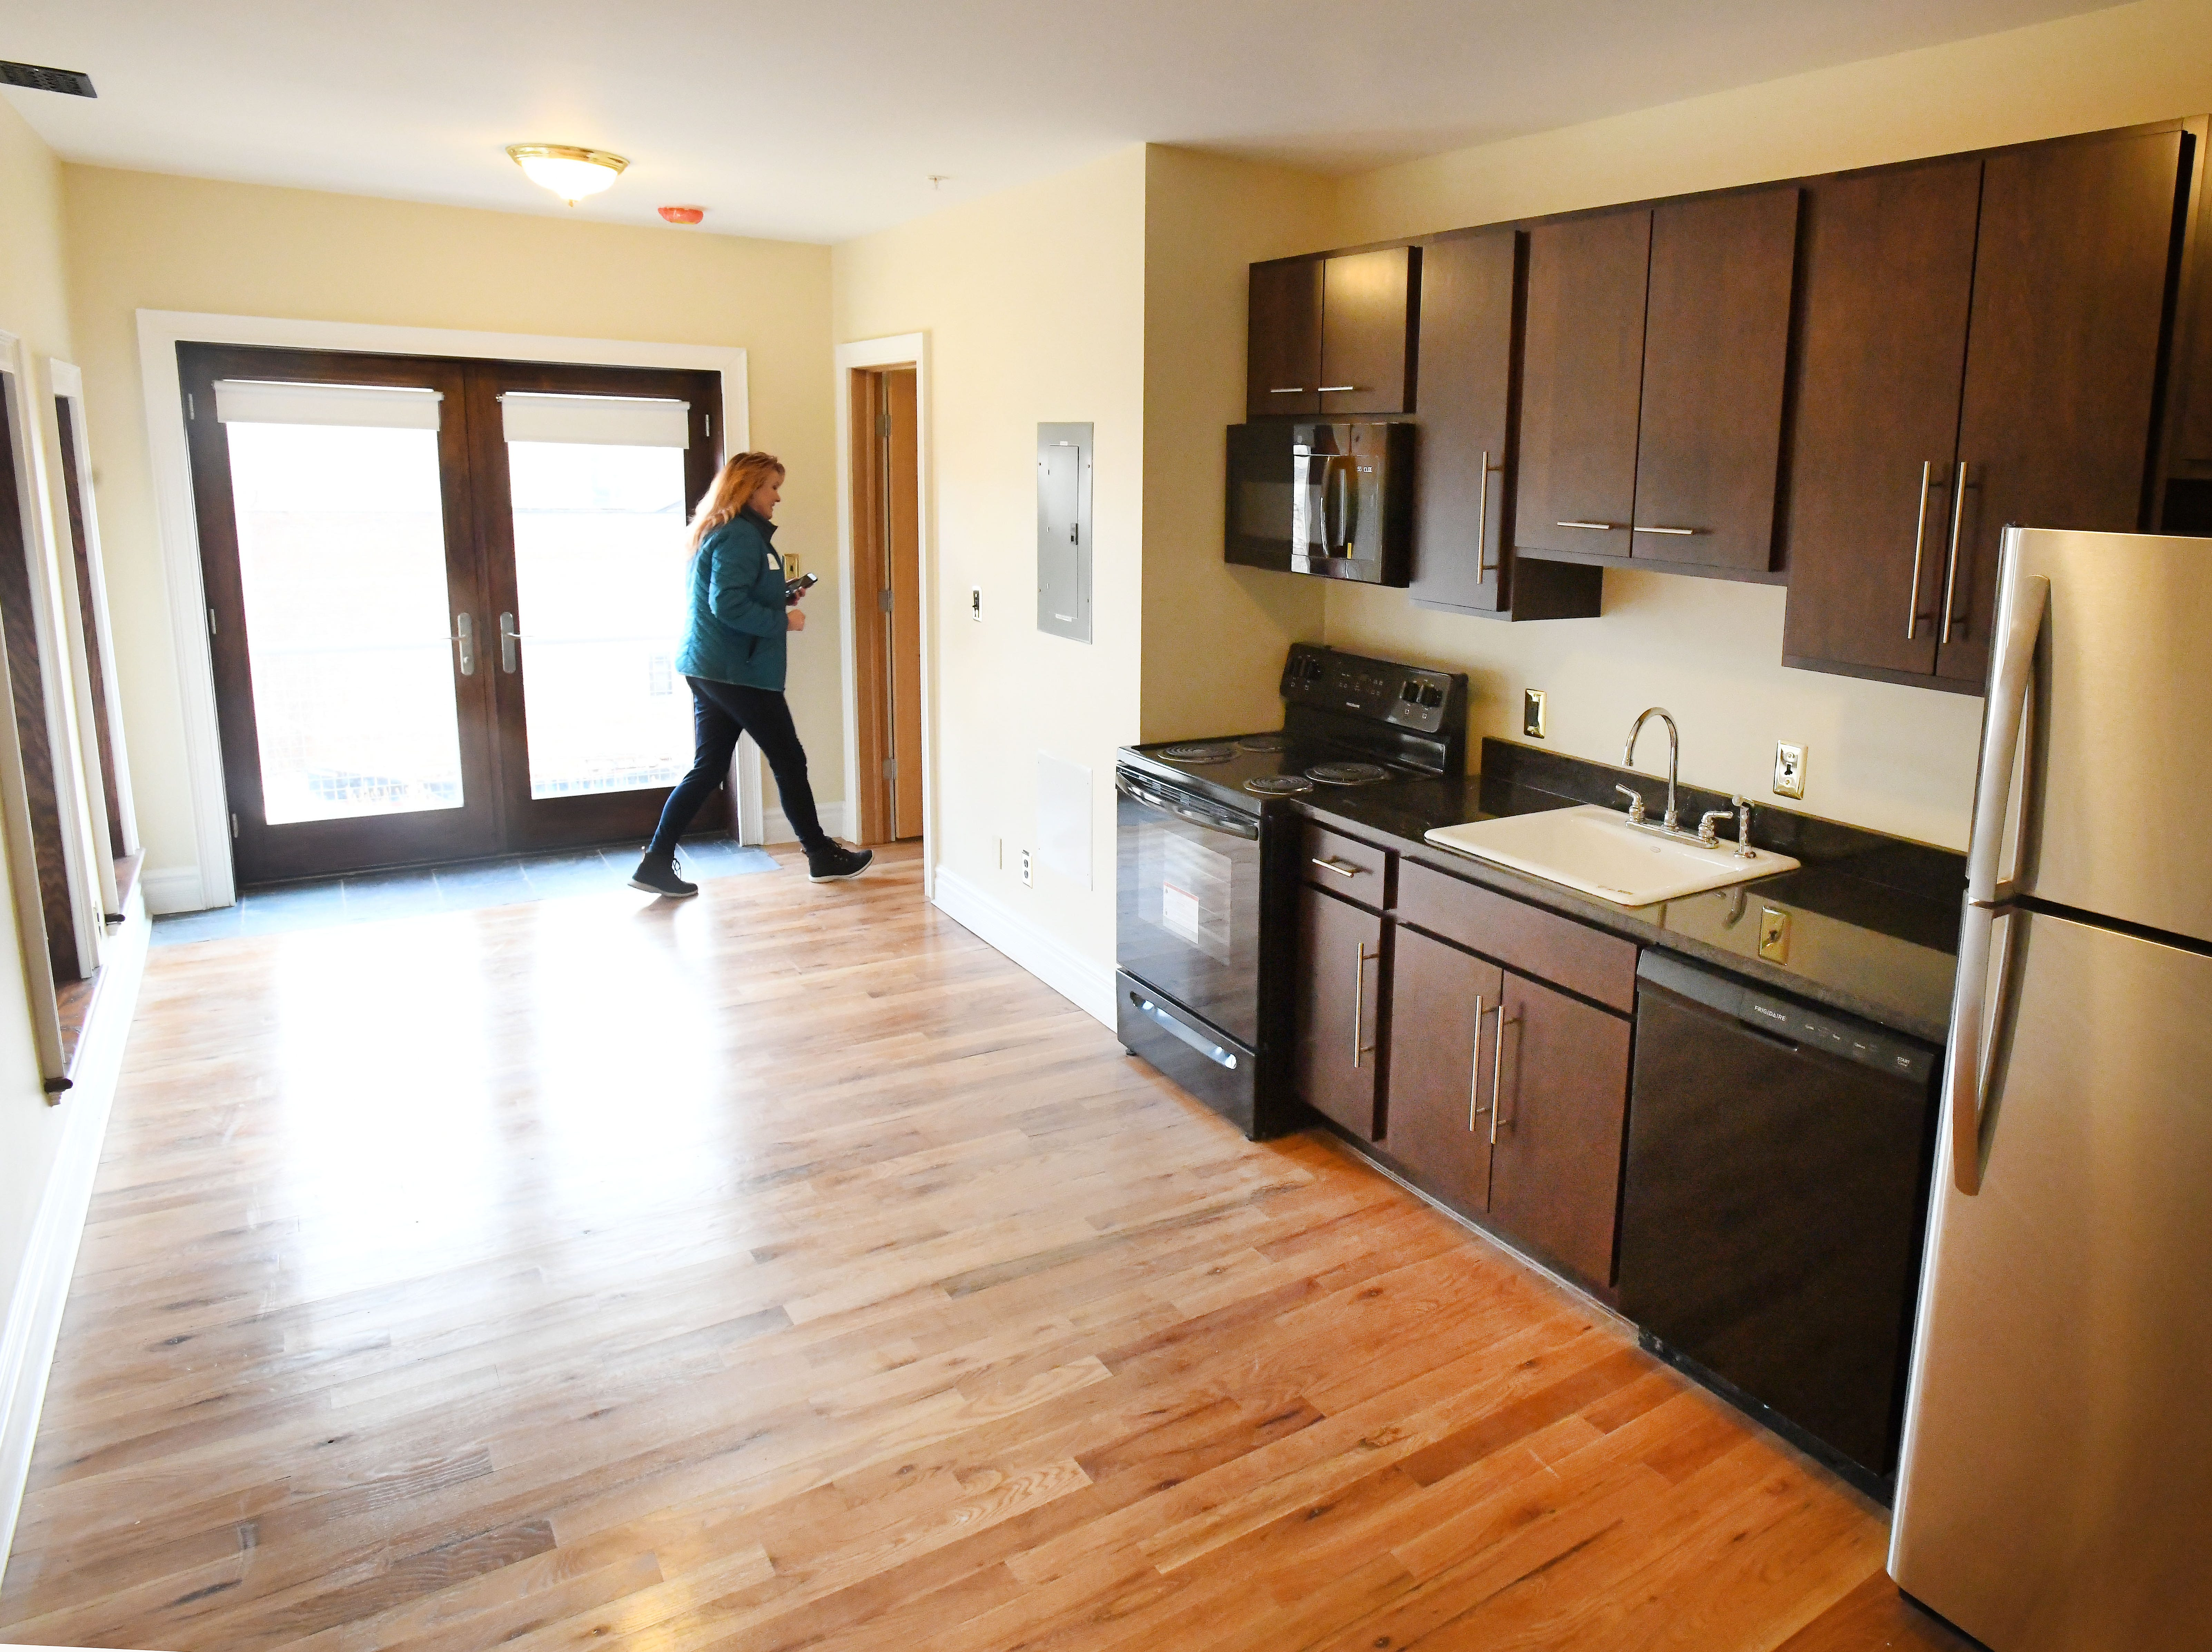 Guests tour a 3rd floor apartment at the historic Scott Mansion.